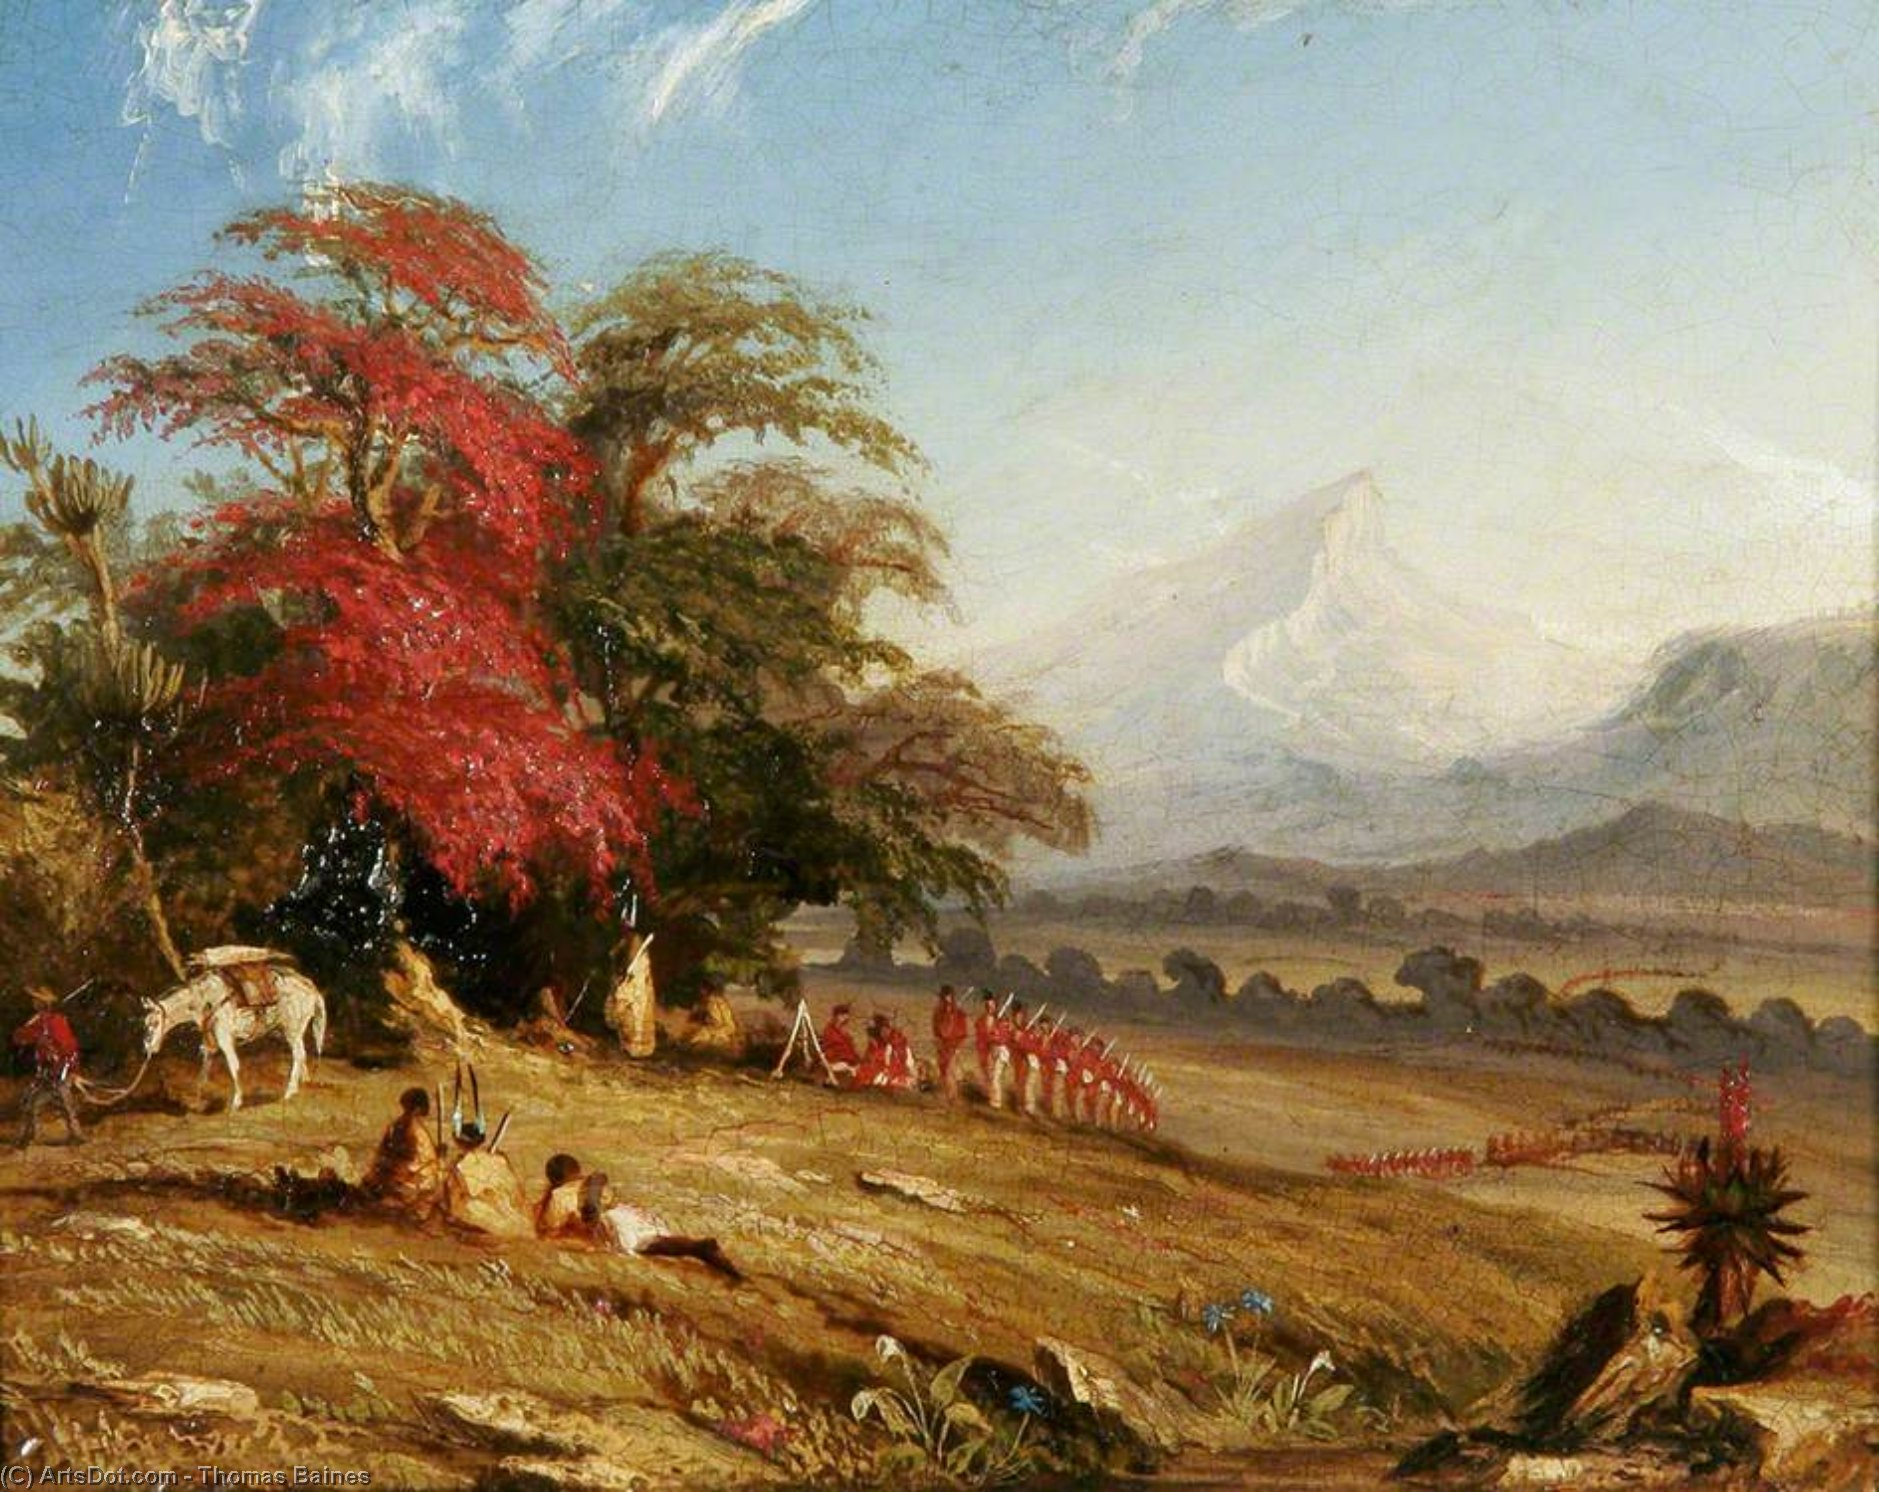 Hogsback, South Africa by Thomas Baines (1820-1875, United Kingdom)